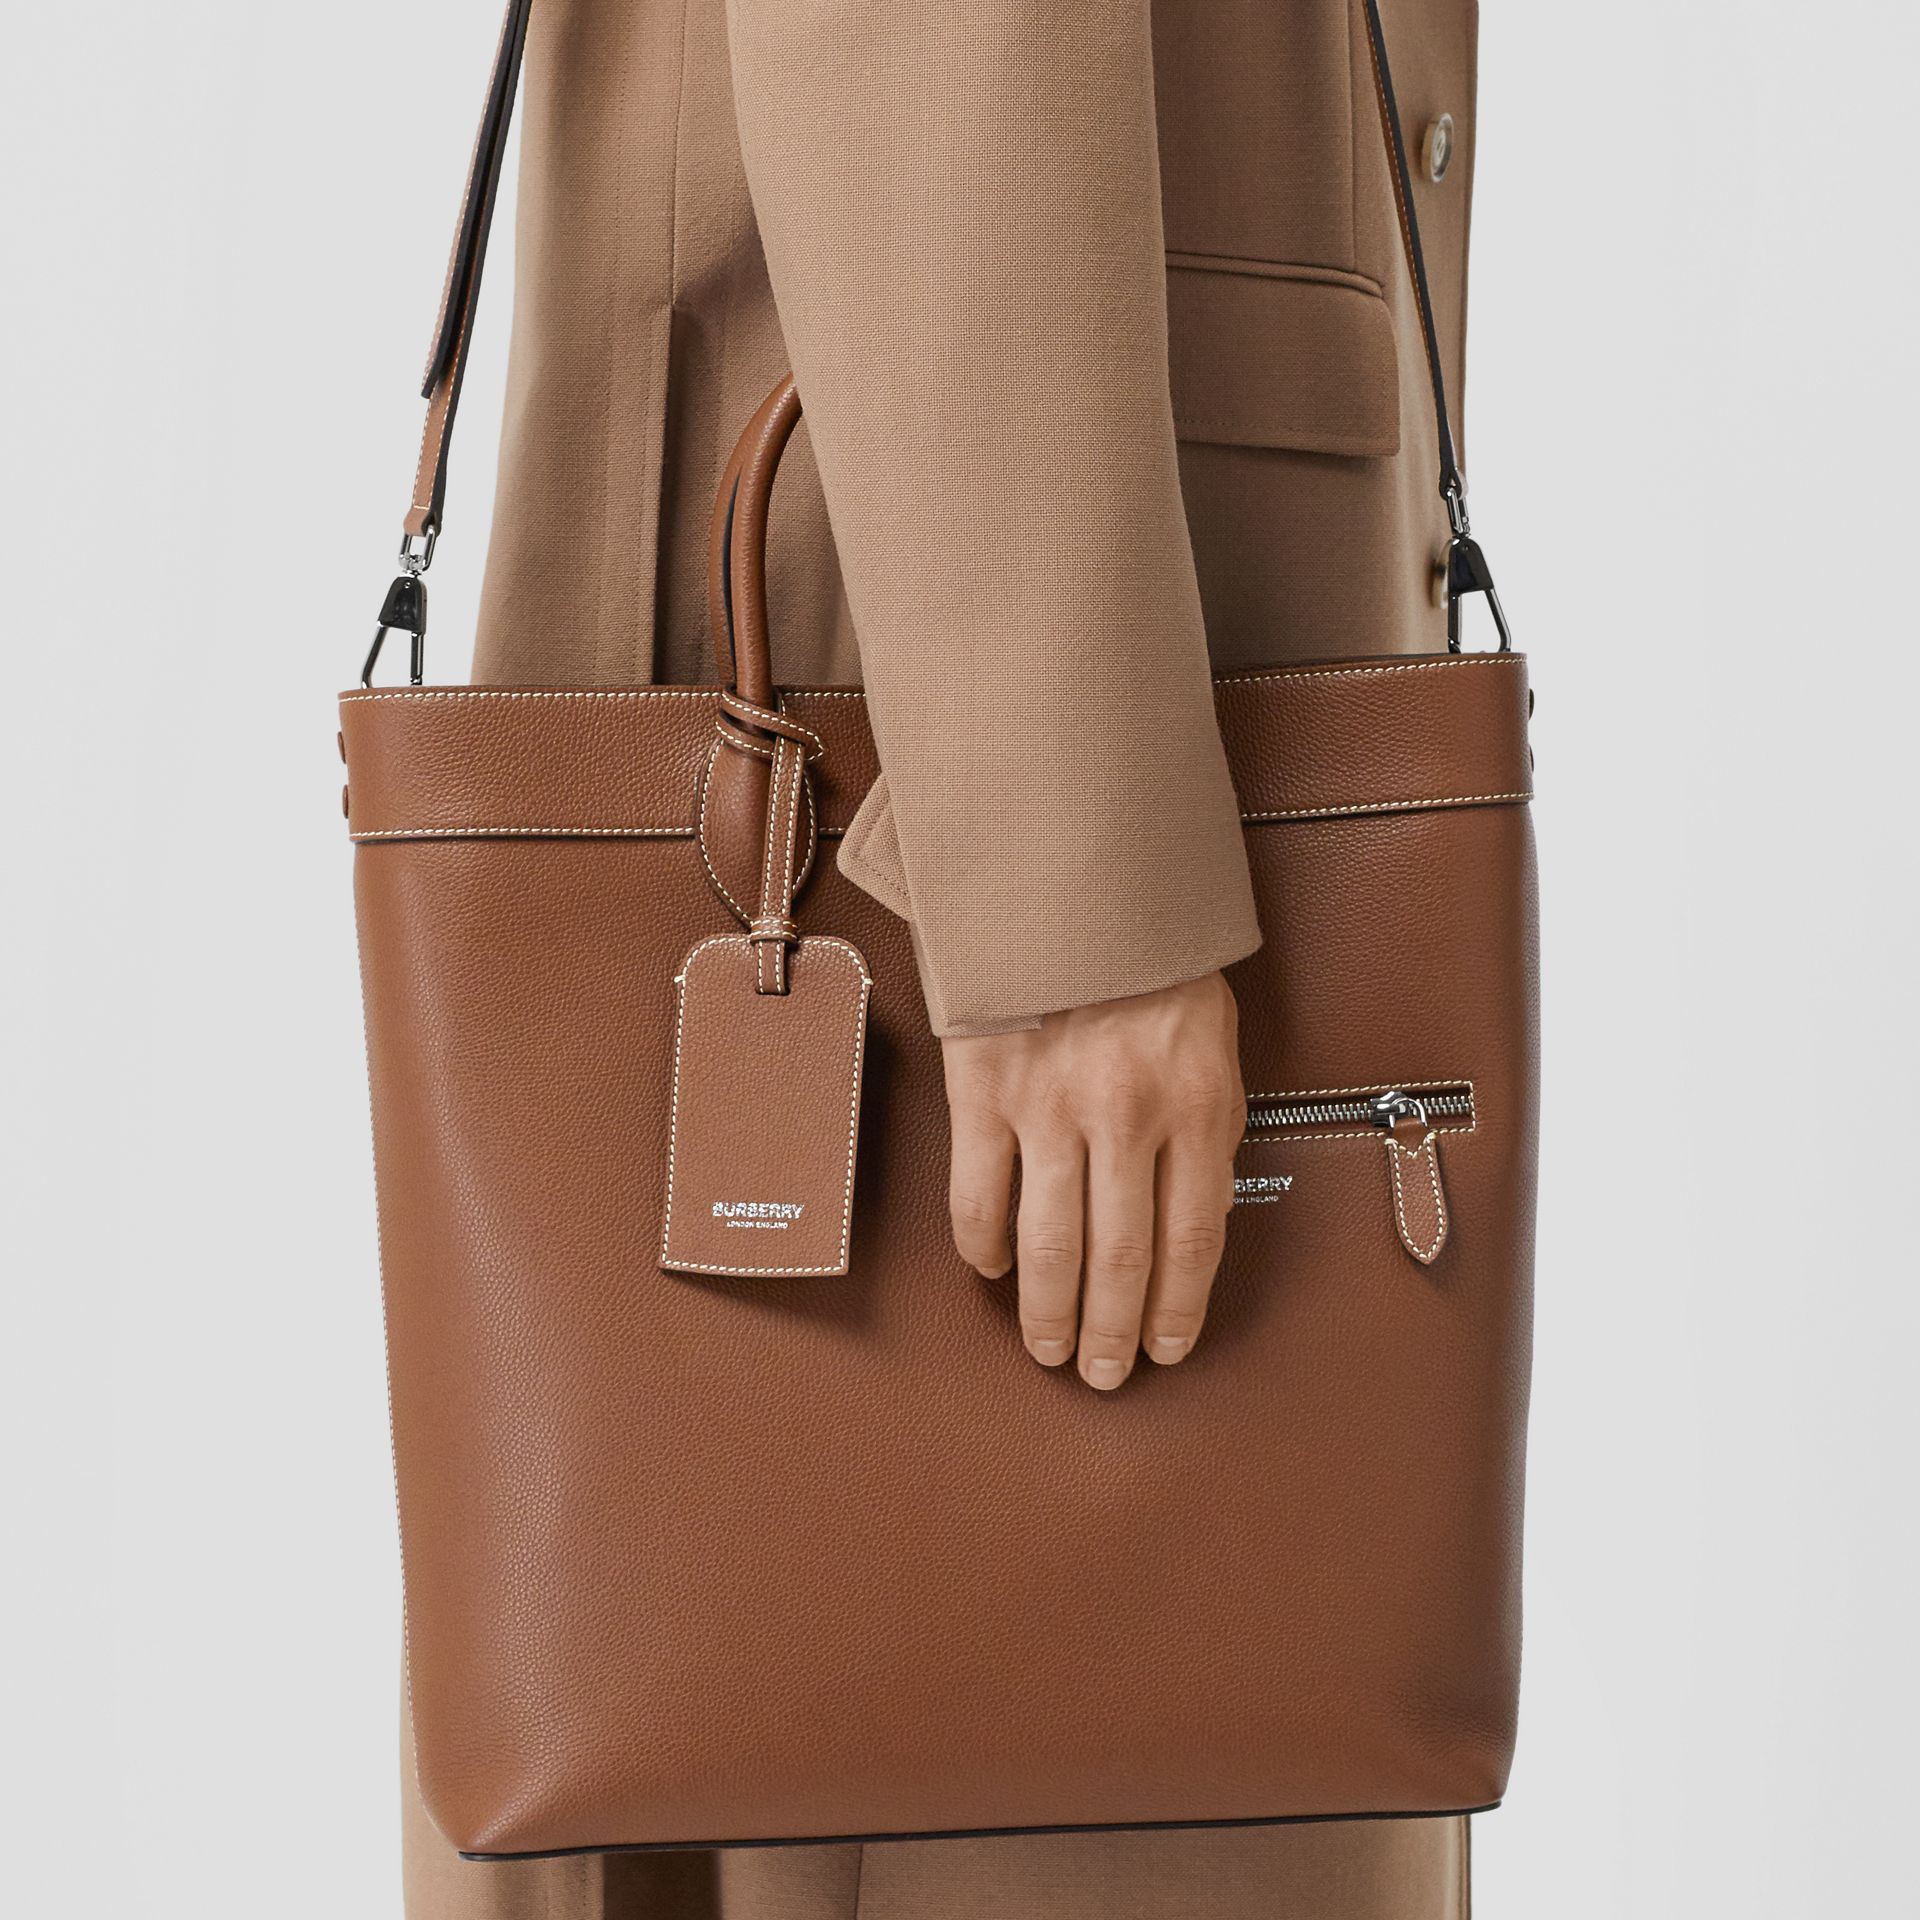 Grainy Leather Tote in Tan | Burberry - gallery image 3